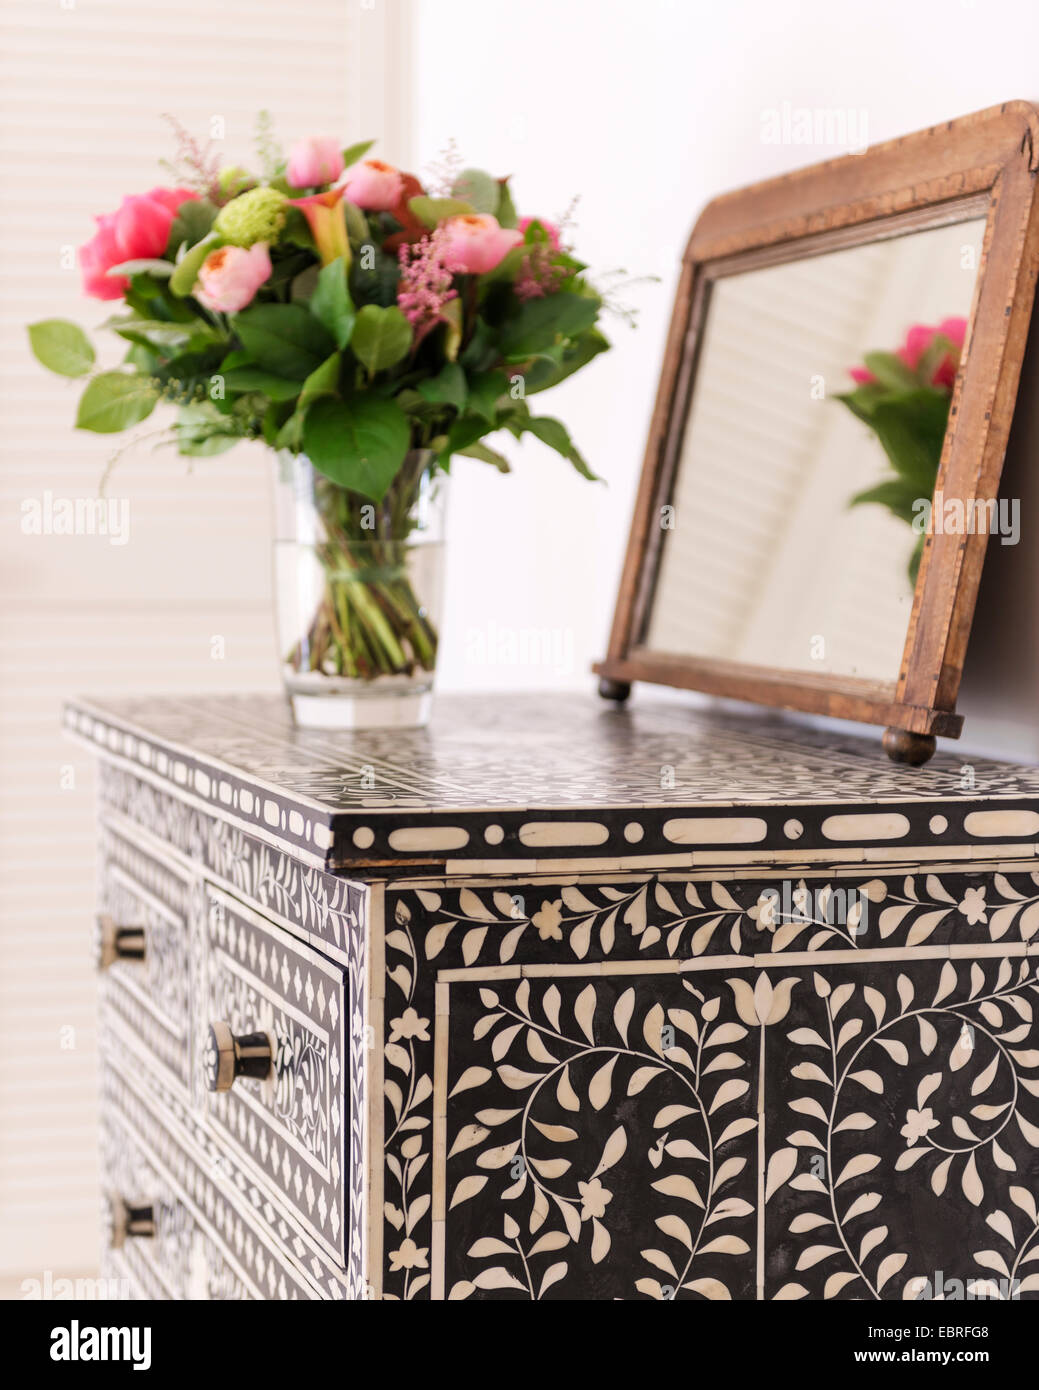 Mirror and vase of flowers on bone inlay chest of drawers - Stock Image